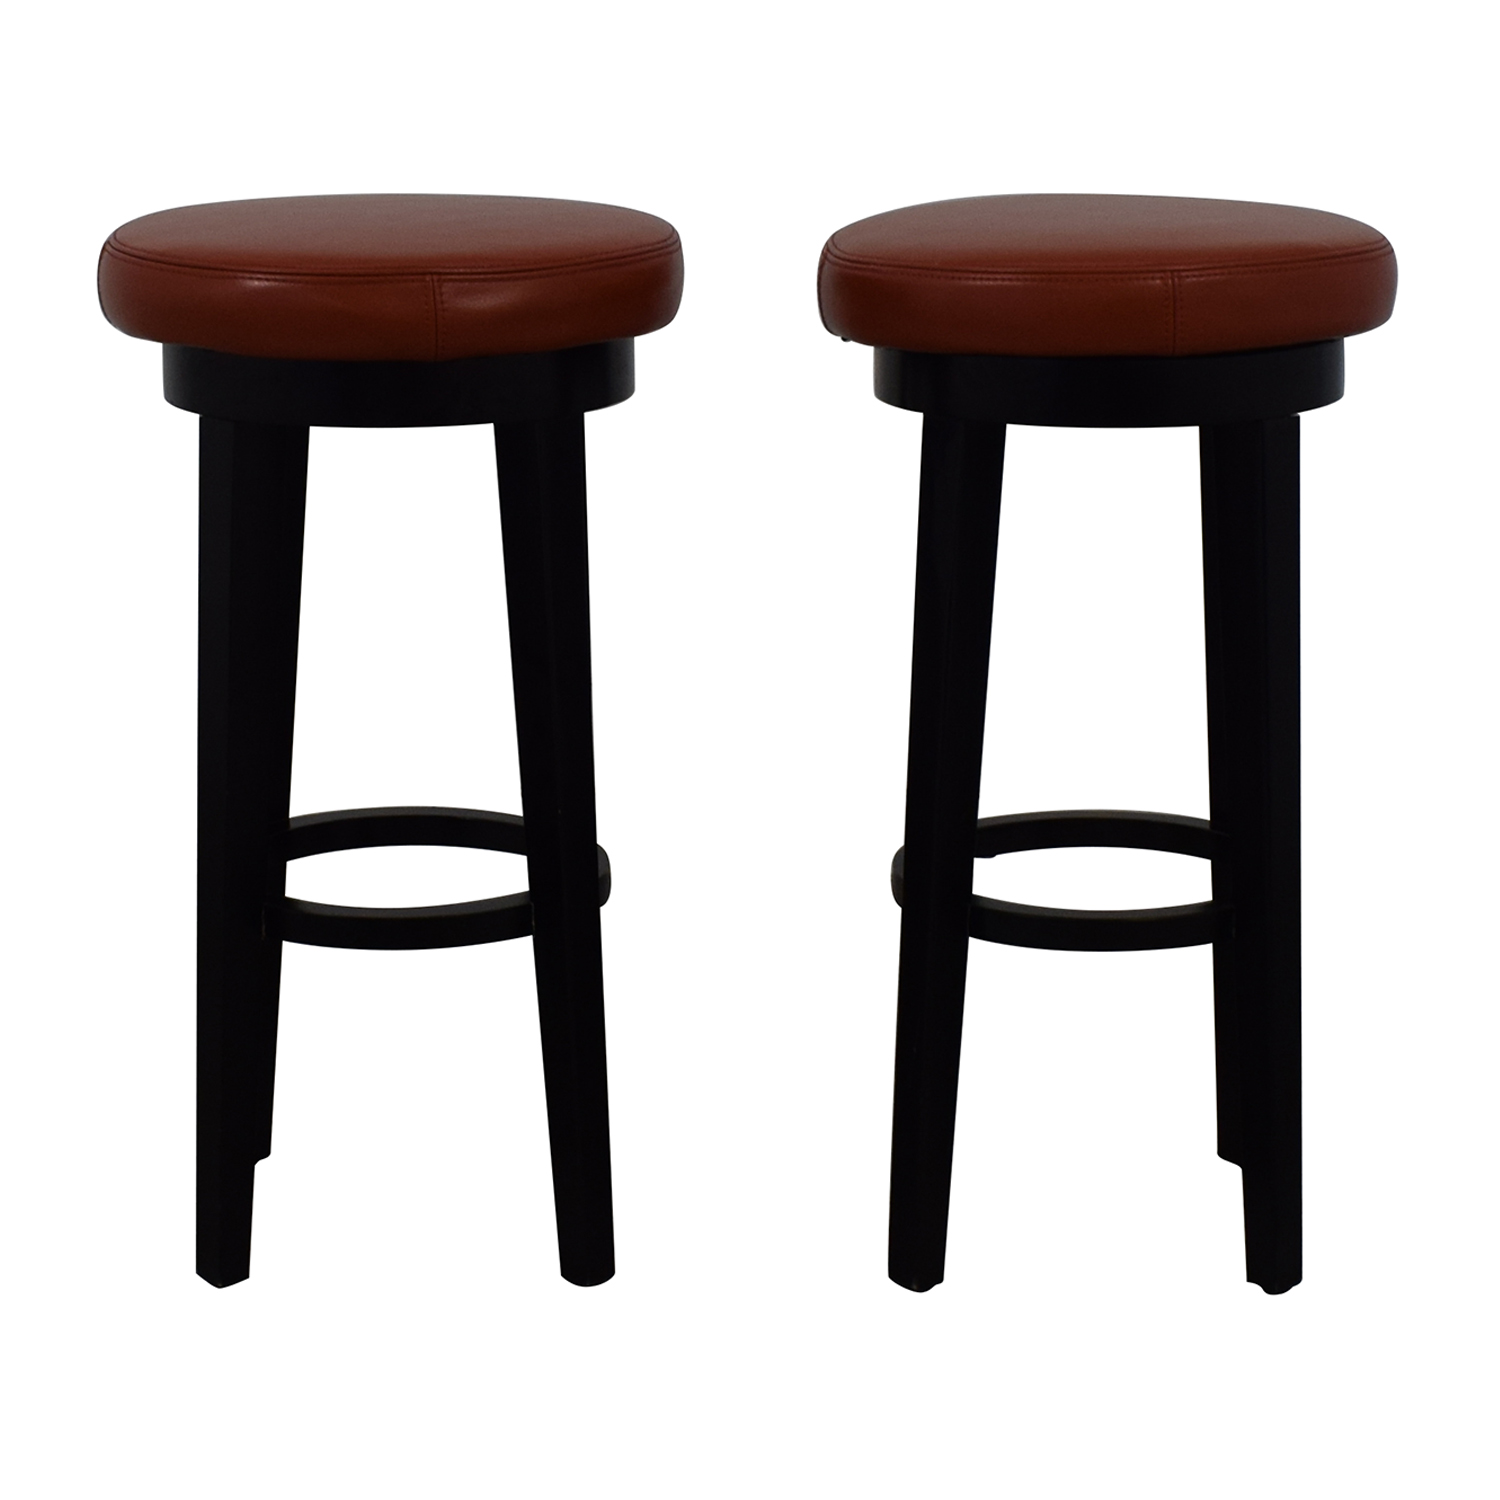 Grandin Road Grandin Road Orange Swivel Bar Stools Stools